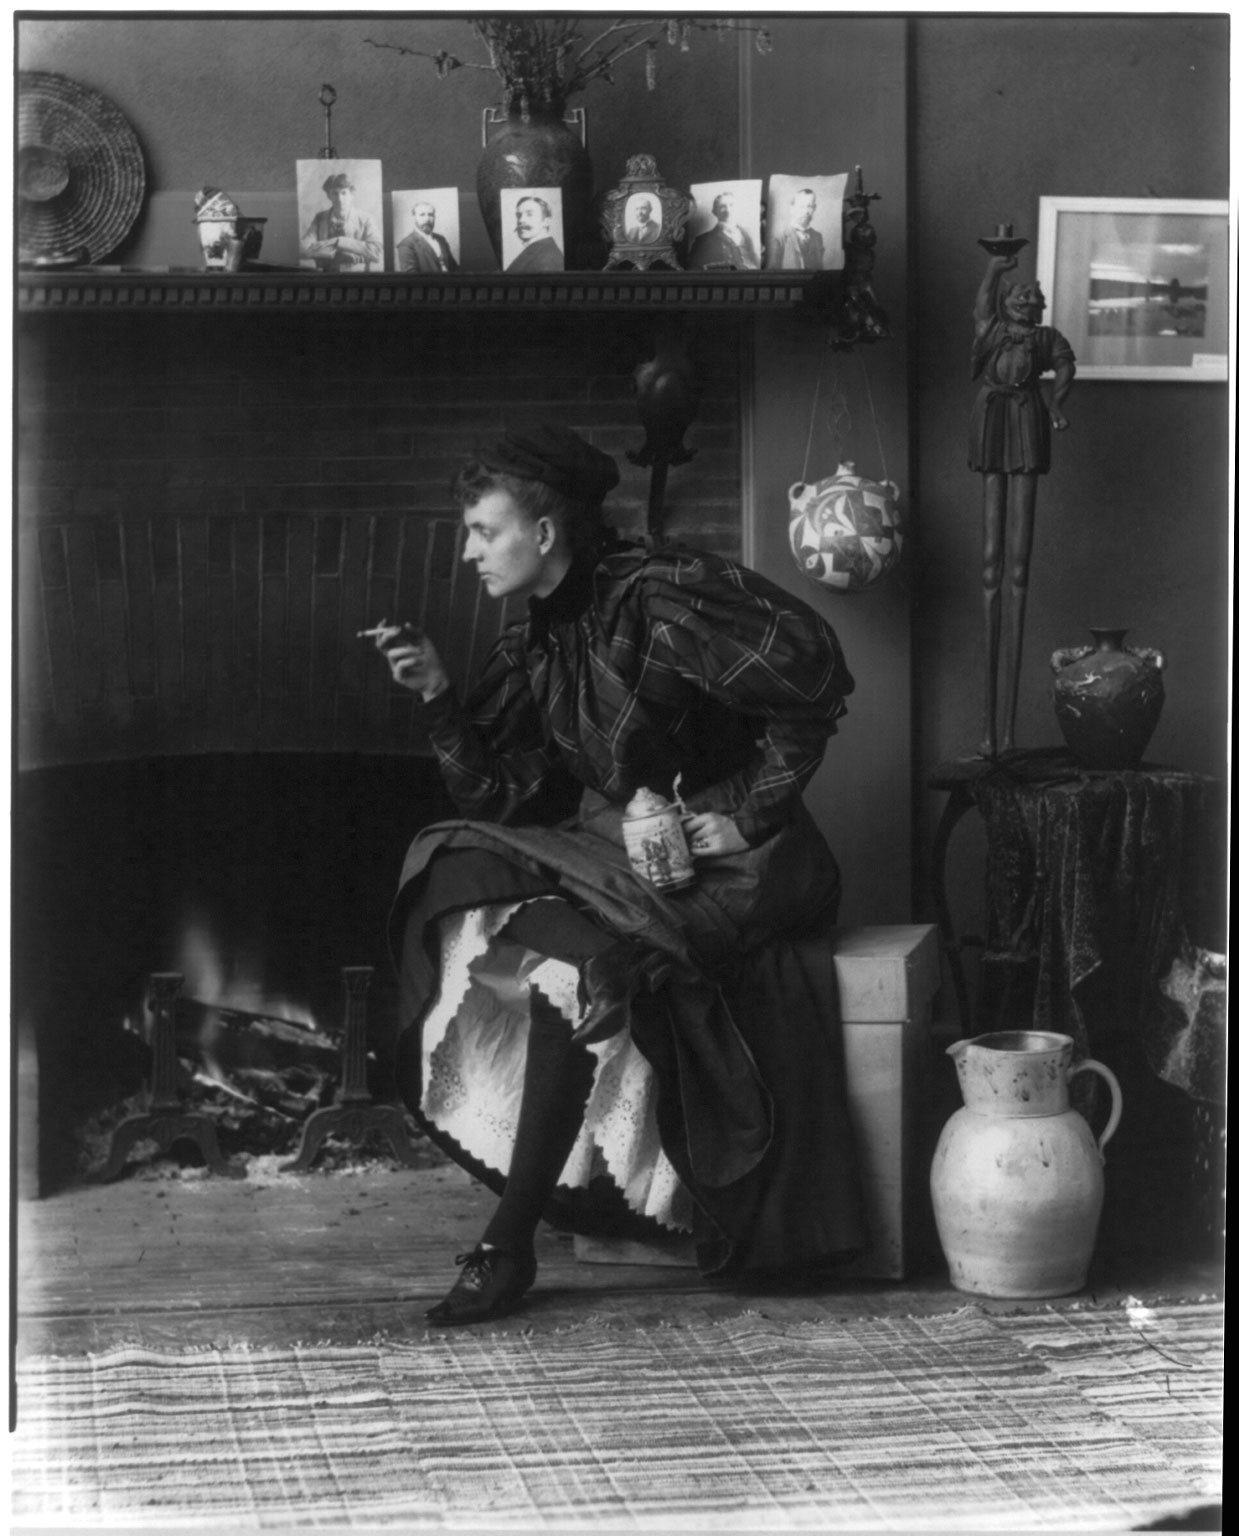 Frances  Fannie  Benjamin Johnston (1864–1952)One of the earliest American female photographers and photojournalists. She was given her first camera by George Eastman, a close friend of the family. In 1894 she opened her own photographic studio in Washington, D.C. 1896 self-portrait in her Washington, DC studio